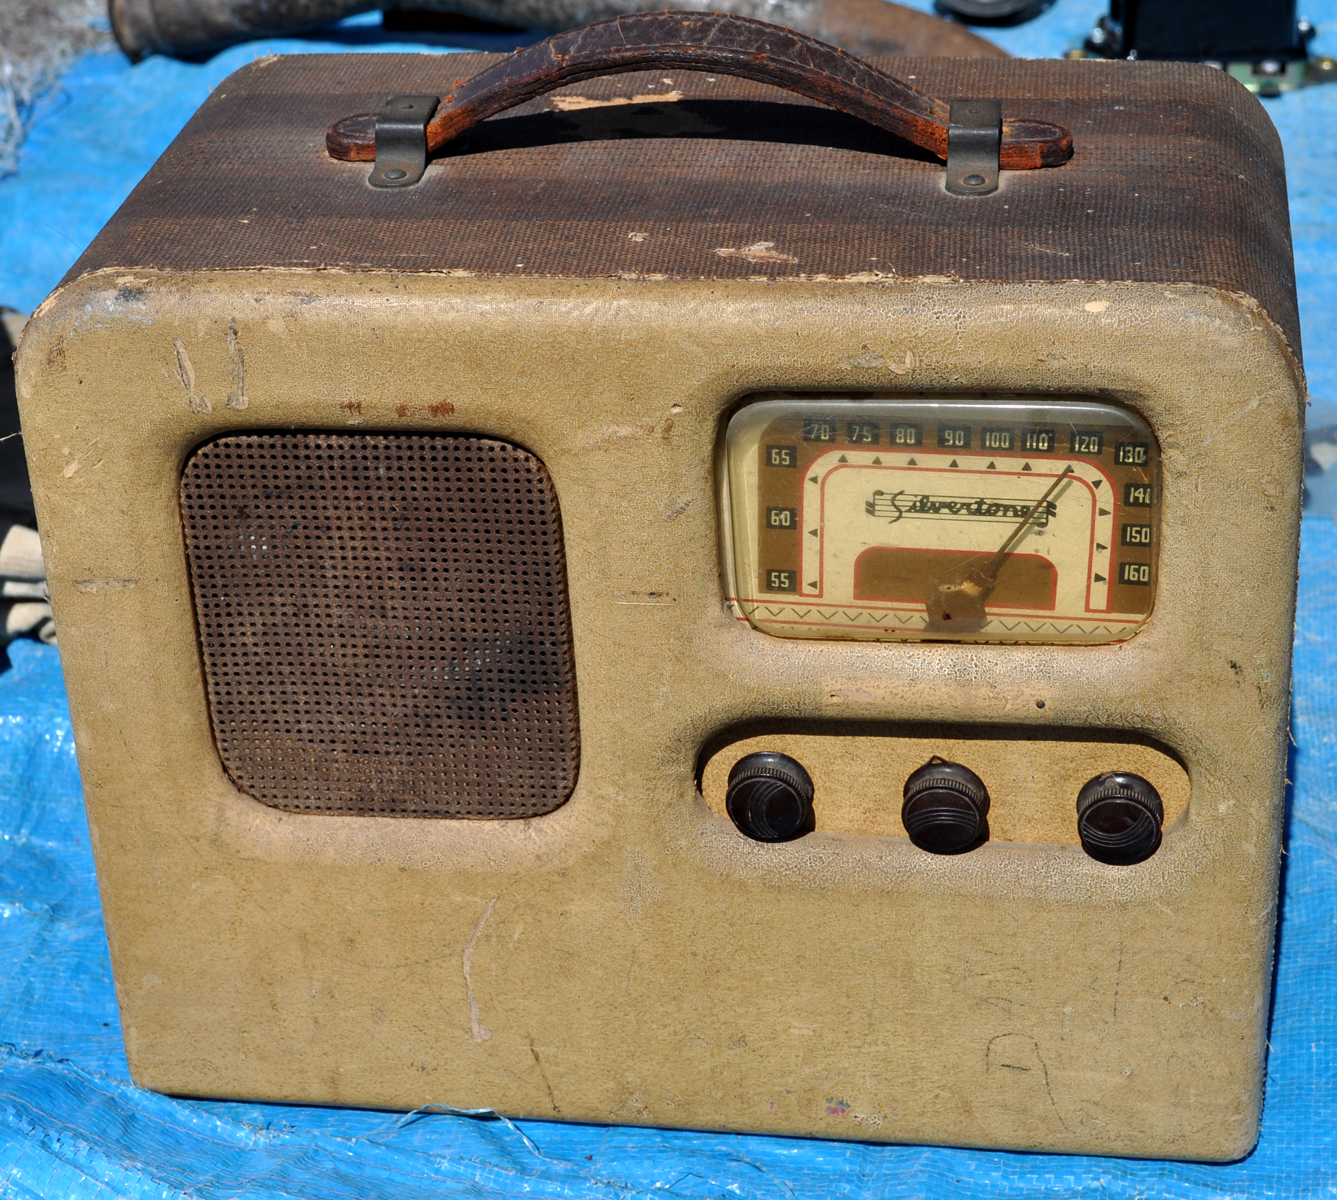 classic car information radios for sale at the qualcomm big 3 swapmeet. Black Bedroom Furniture Sets. Home Design Ideas